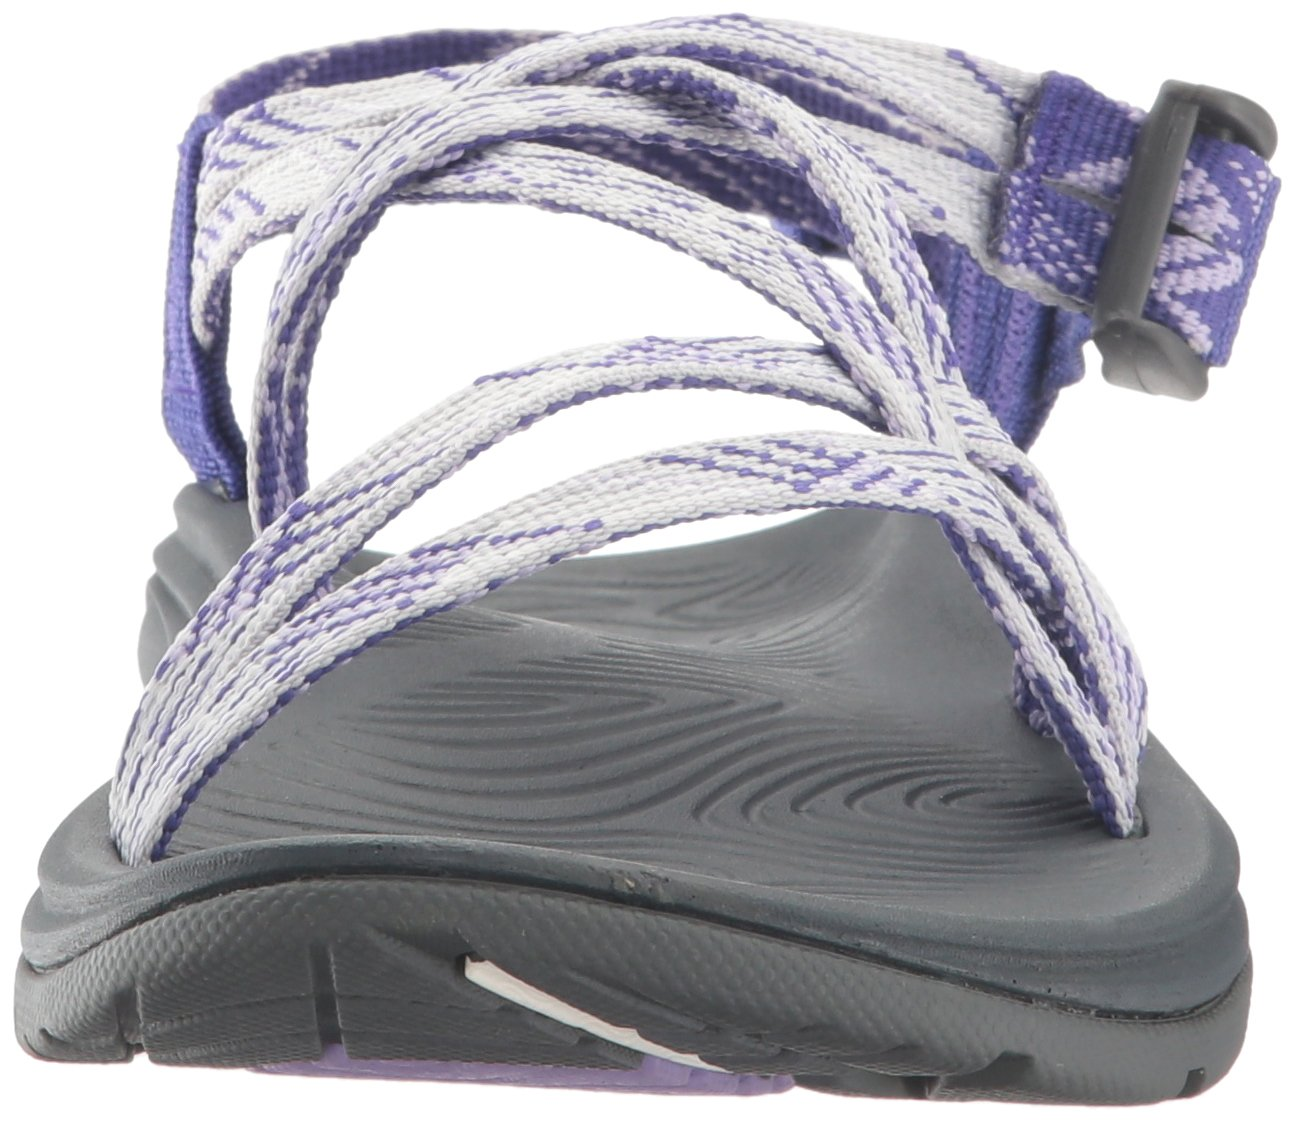 Chaco Women's Zvolv X Athletic Sandal, Lavender Liberty, 6 M US by Chaco (Image #4)